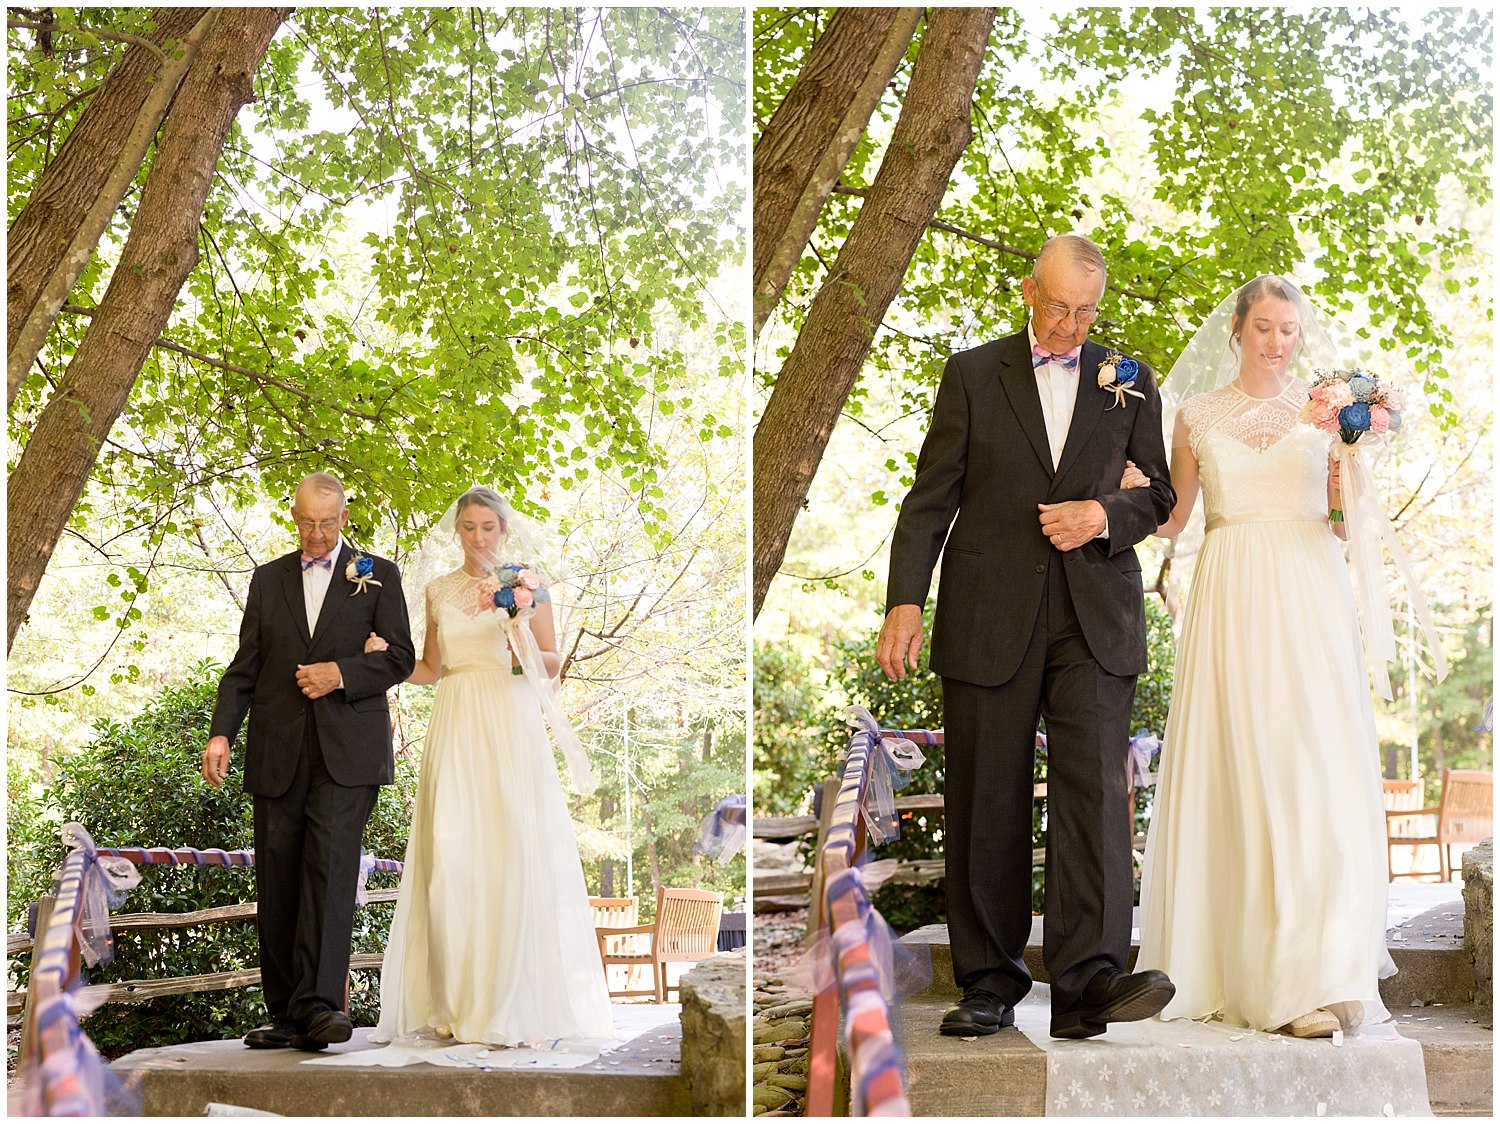 bride and father walking down aisle at camp wedding - destination wedding photographer